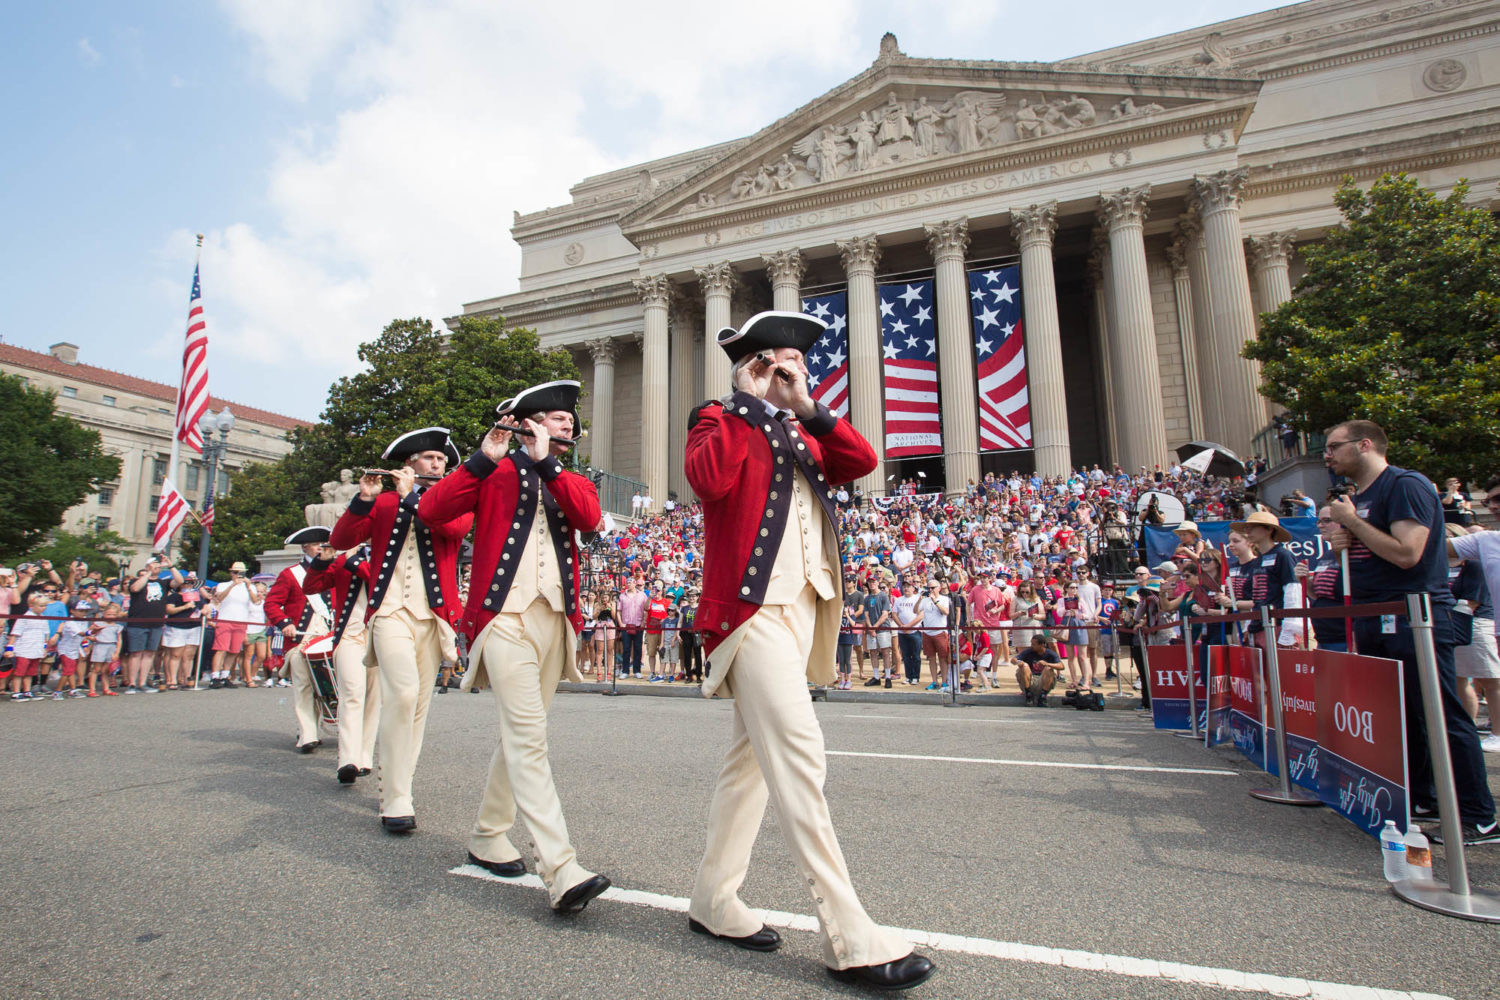 Celebrate the 4th of July at the National Archives followed by the Independence Day Parade. Photograph by Jeff Reed.